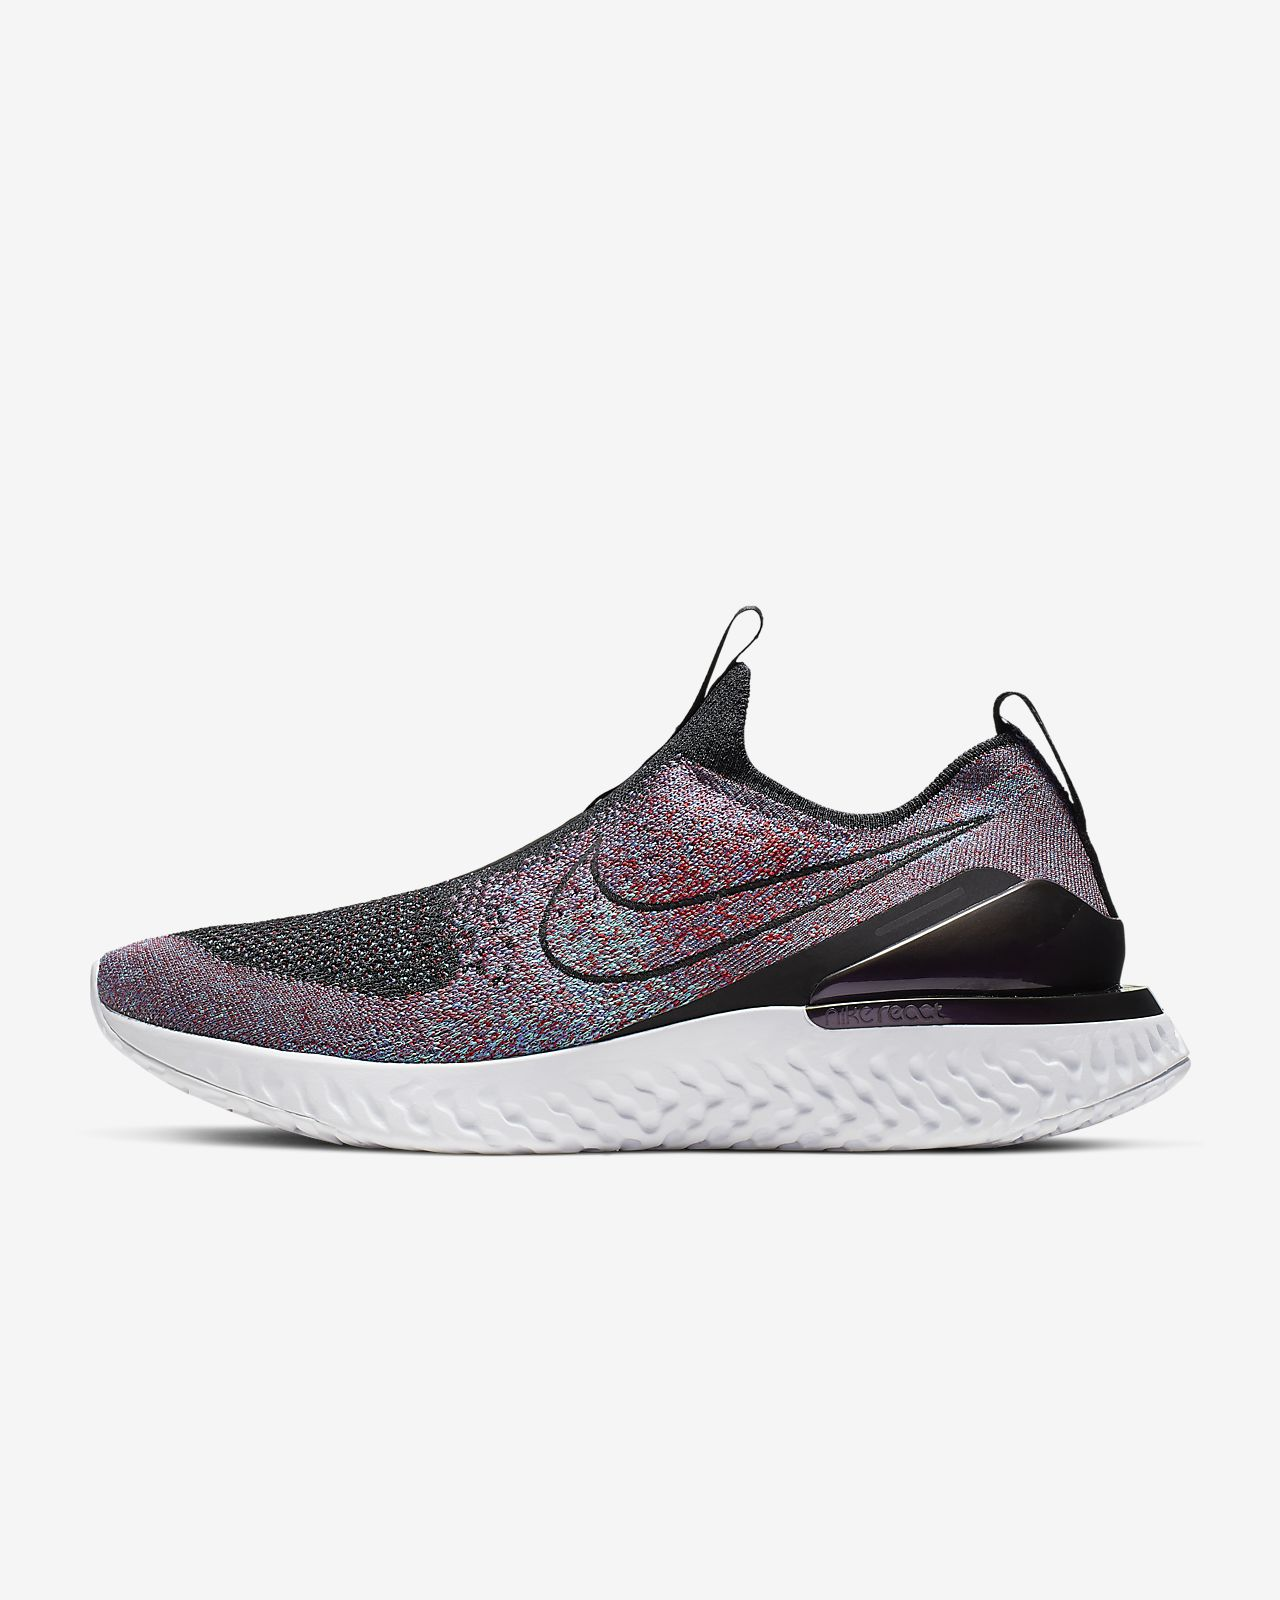 buy popular a06c8 f1650 ... Nike Epic Phantom React Flyknit Men s Running Shoe